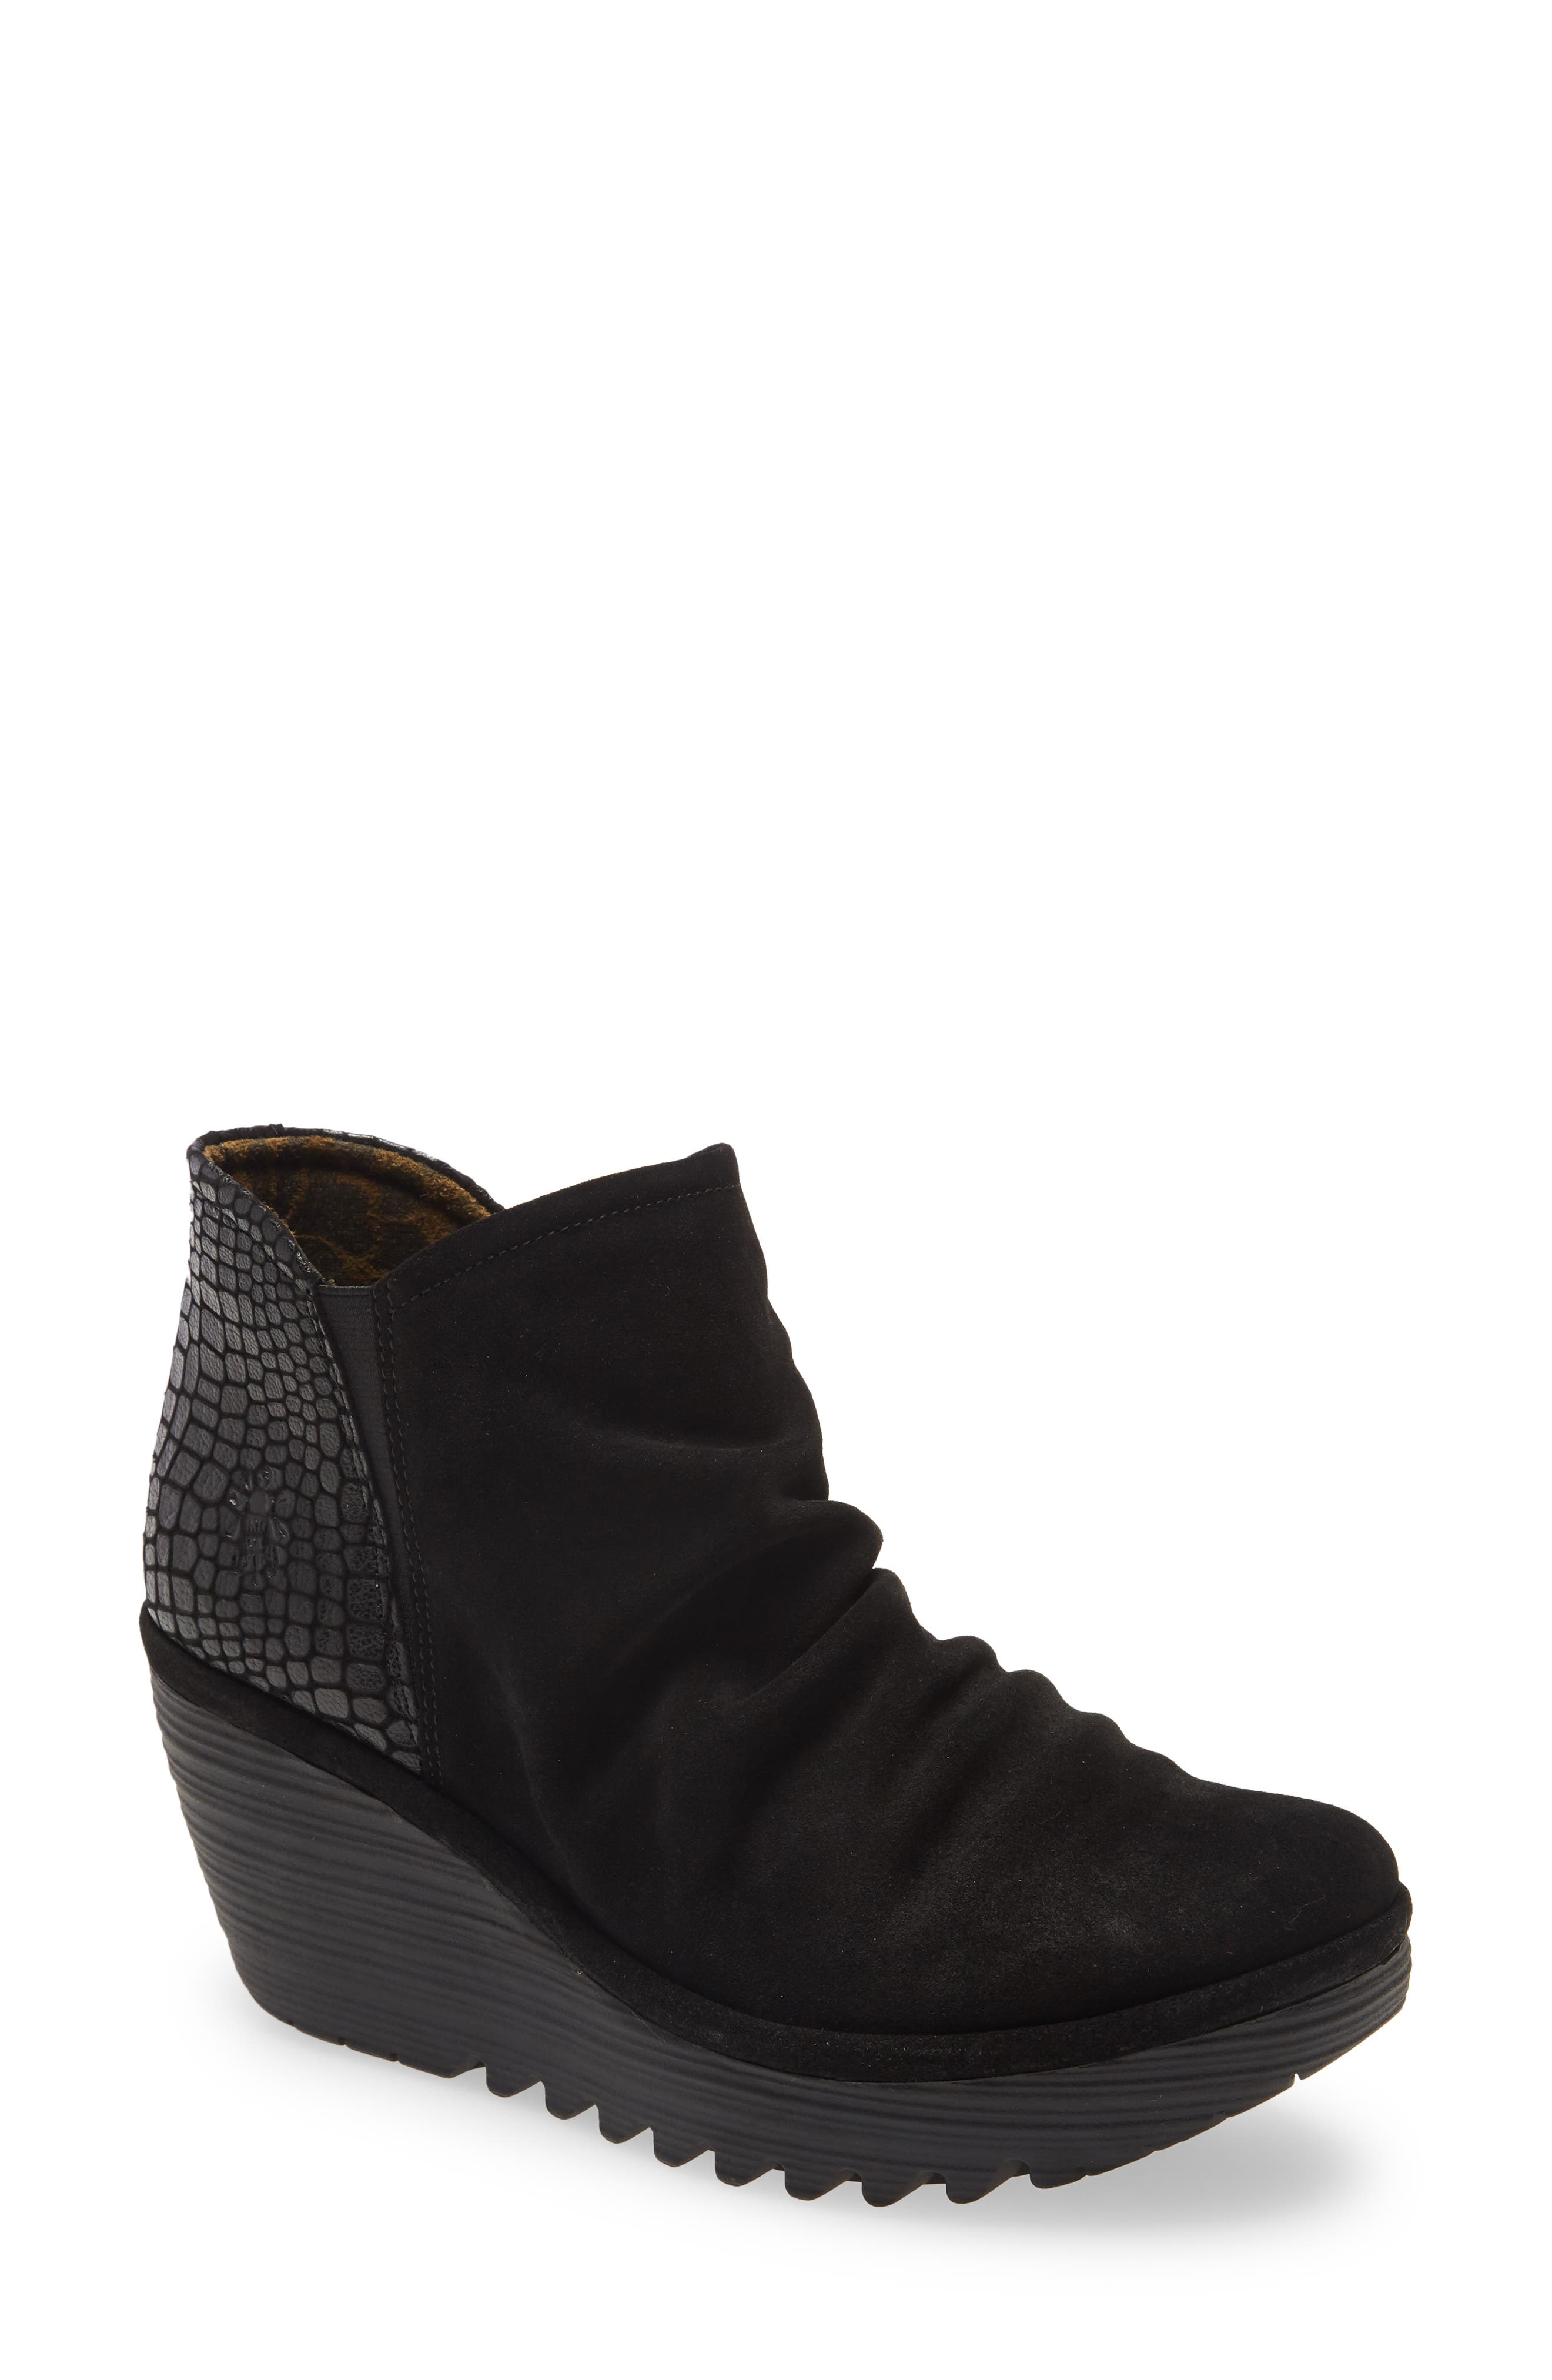 Yamy Wedge Bootie